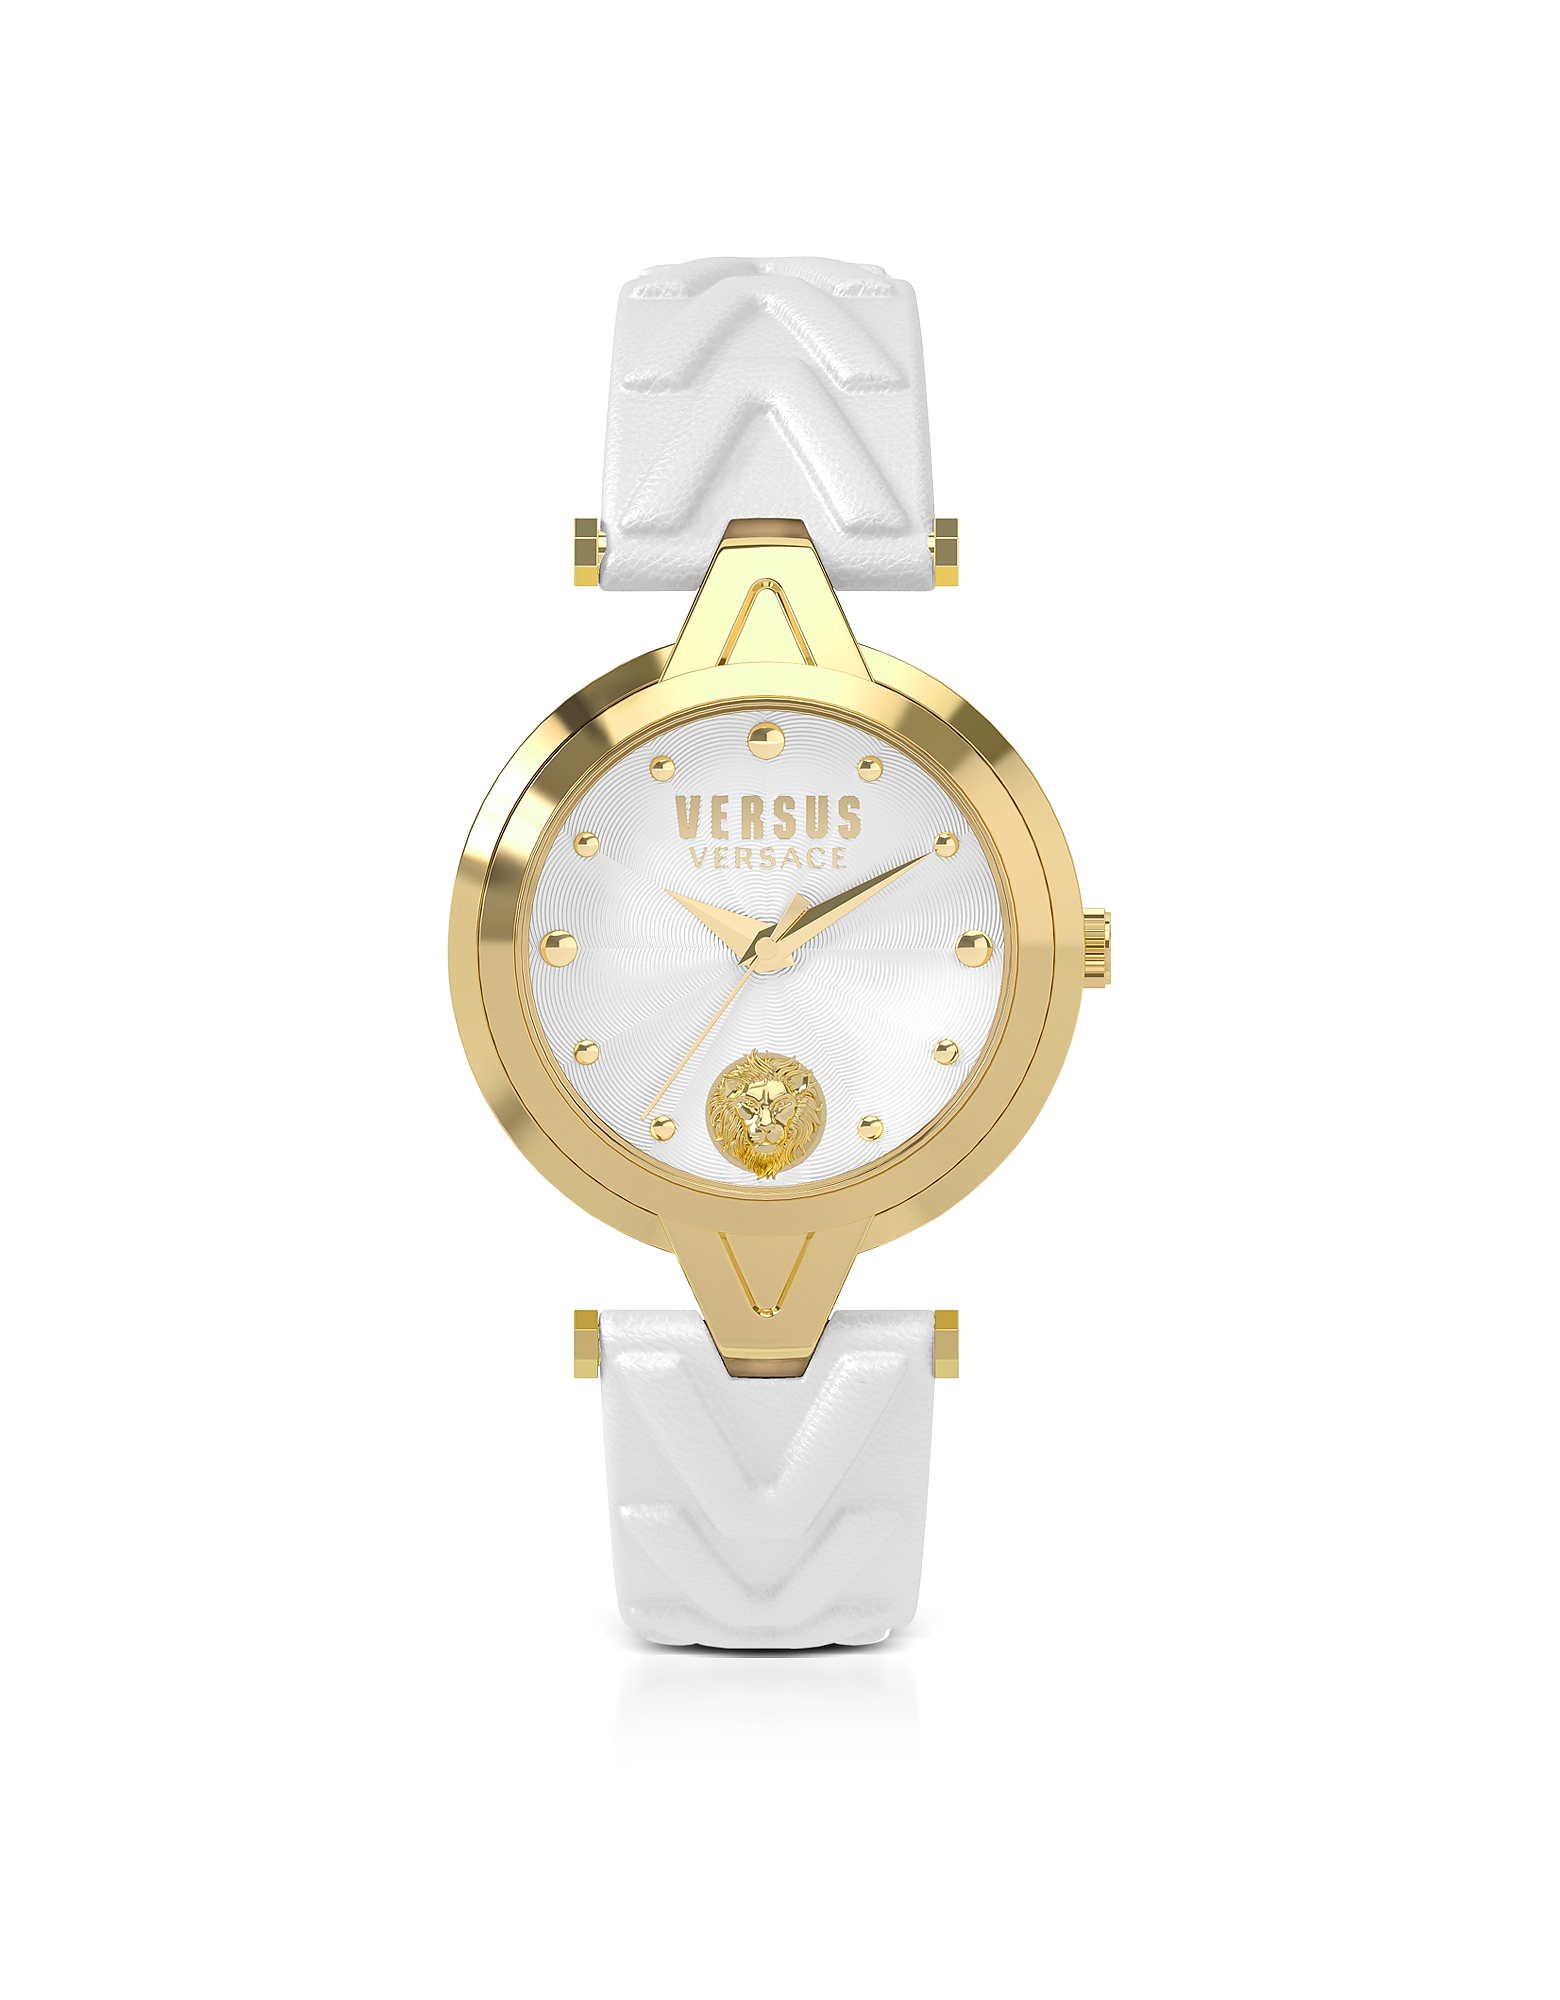 V Versus Gold Tone Stainless Steel Women's Watch w/White Leather Strap